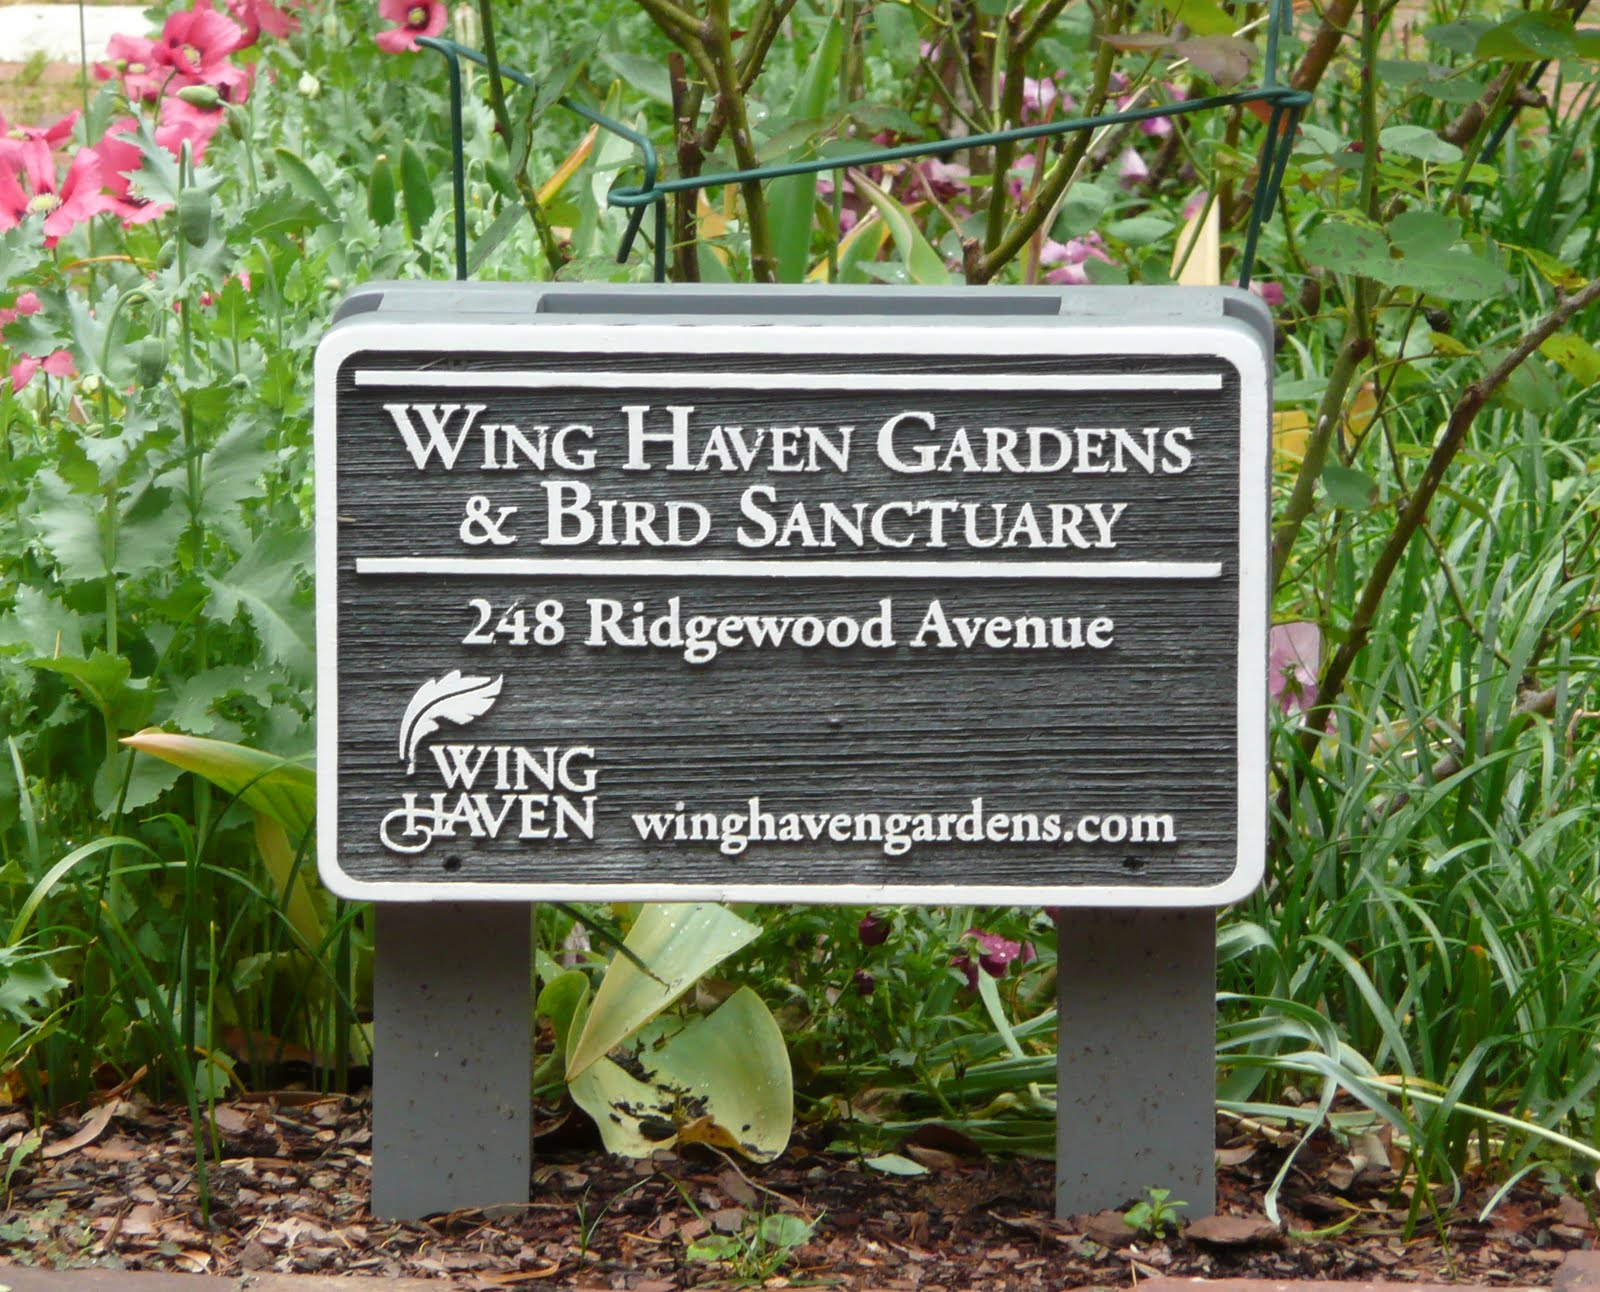 Mayo 39 s masterpieces loving lois ehlert and on to the ocean - Wing haven gardens and bird sanctuary ...